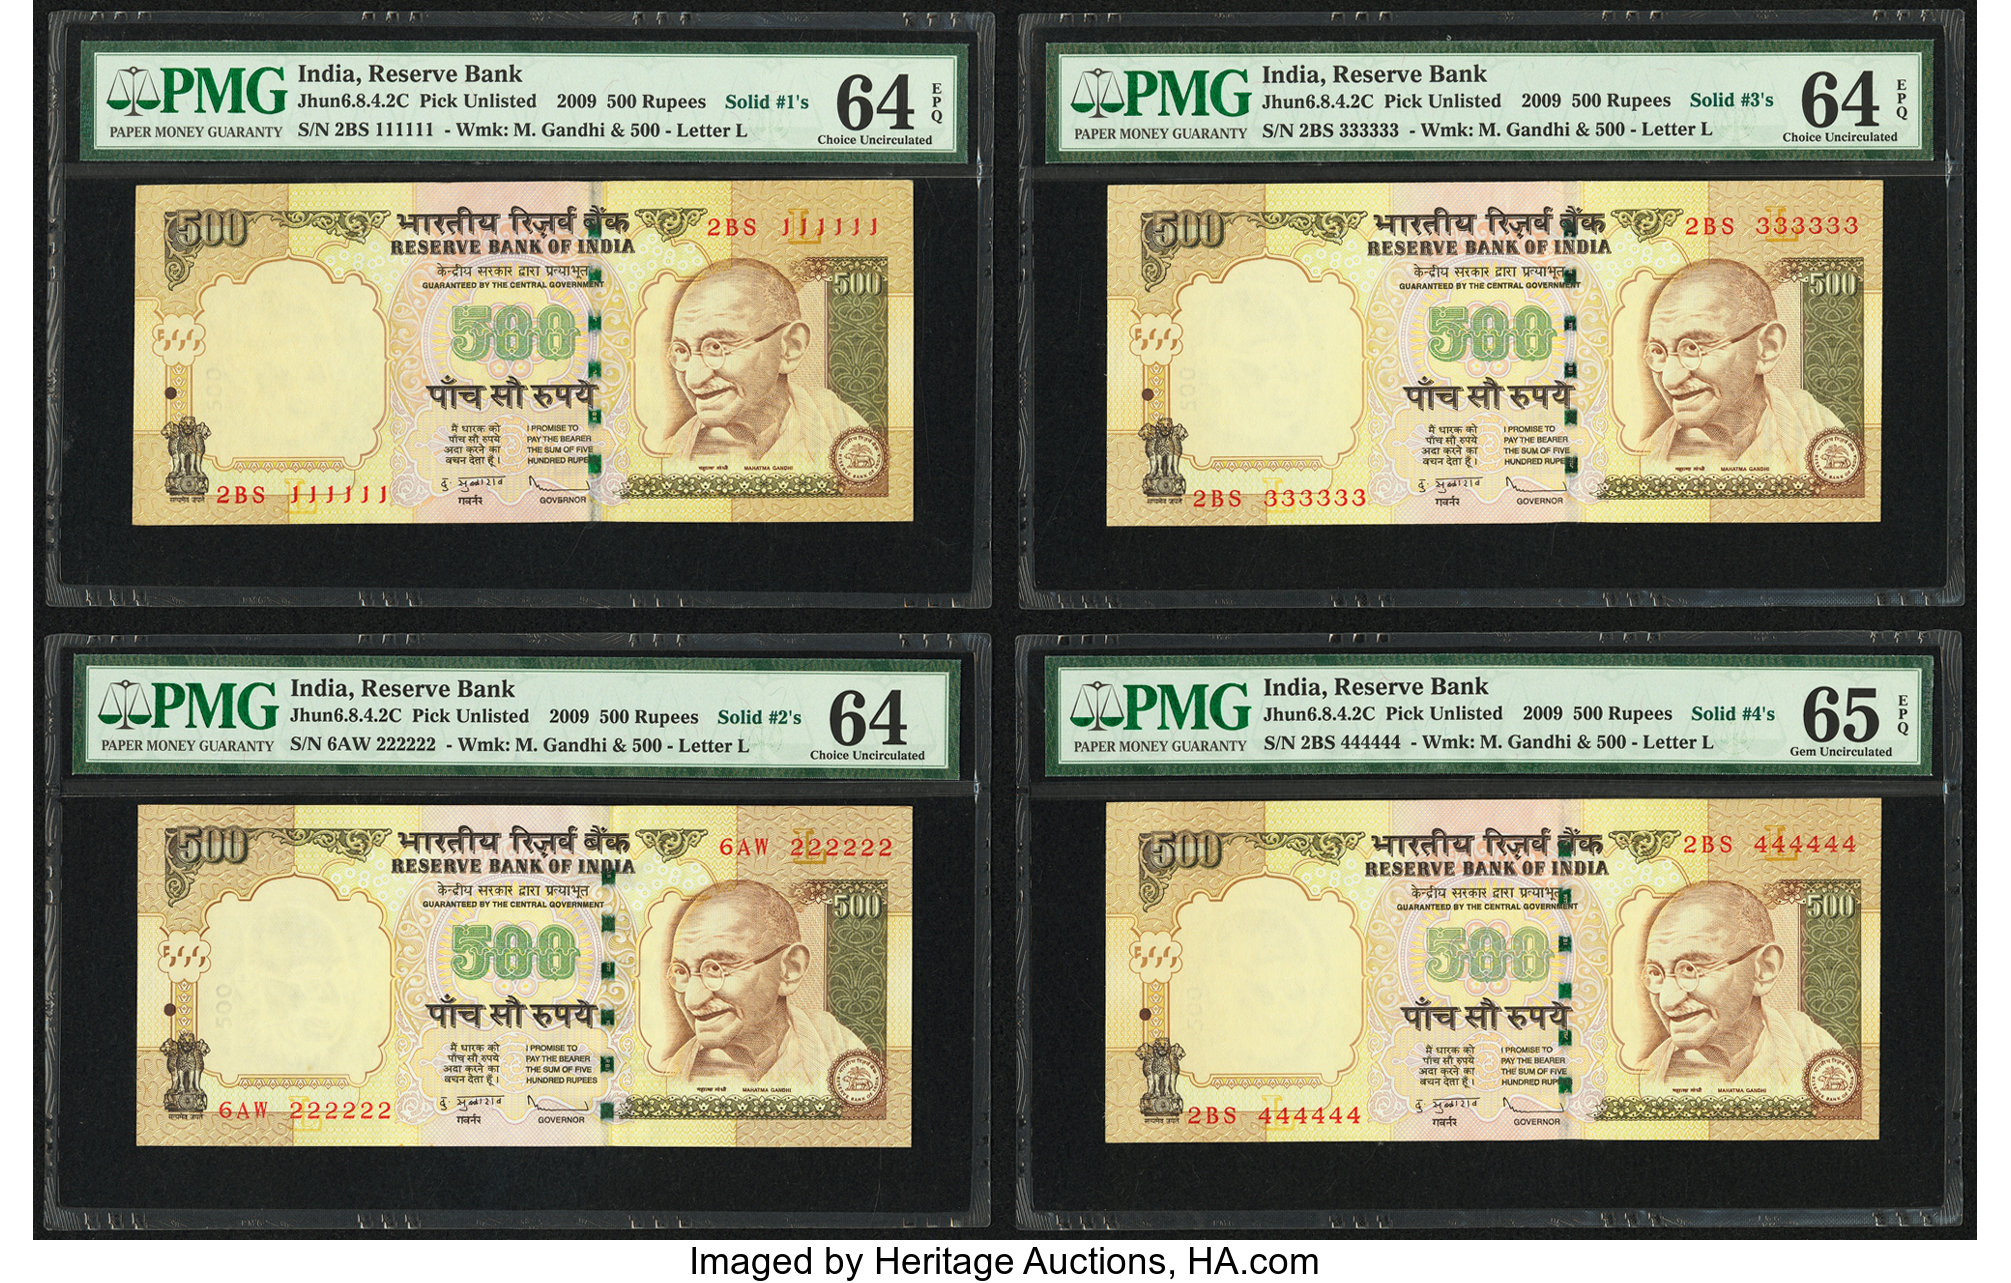 Rs 500// India Banknote LATEST ISSUE Super Solid Number 3-333333 UNC